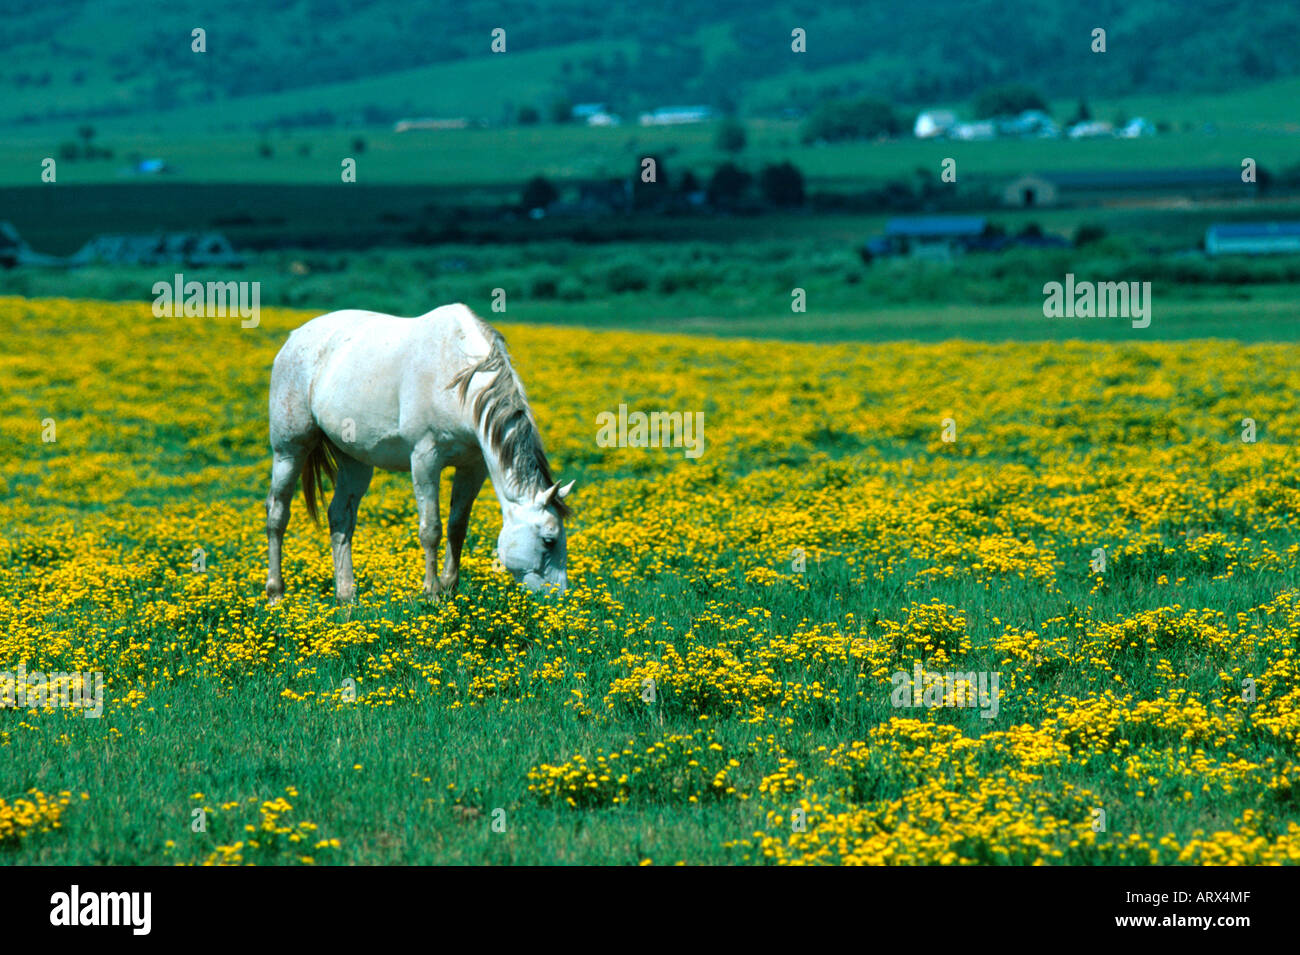 Flowers steamboat springs colorado stock photos flowers steamboat white horse in field of yellow flowers near steamboat springs colorado usa stock image mightylinksfo